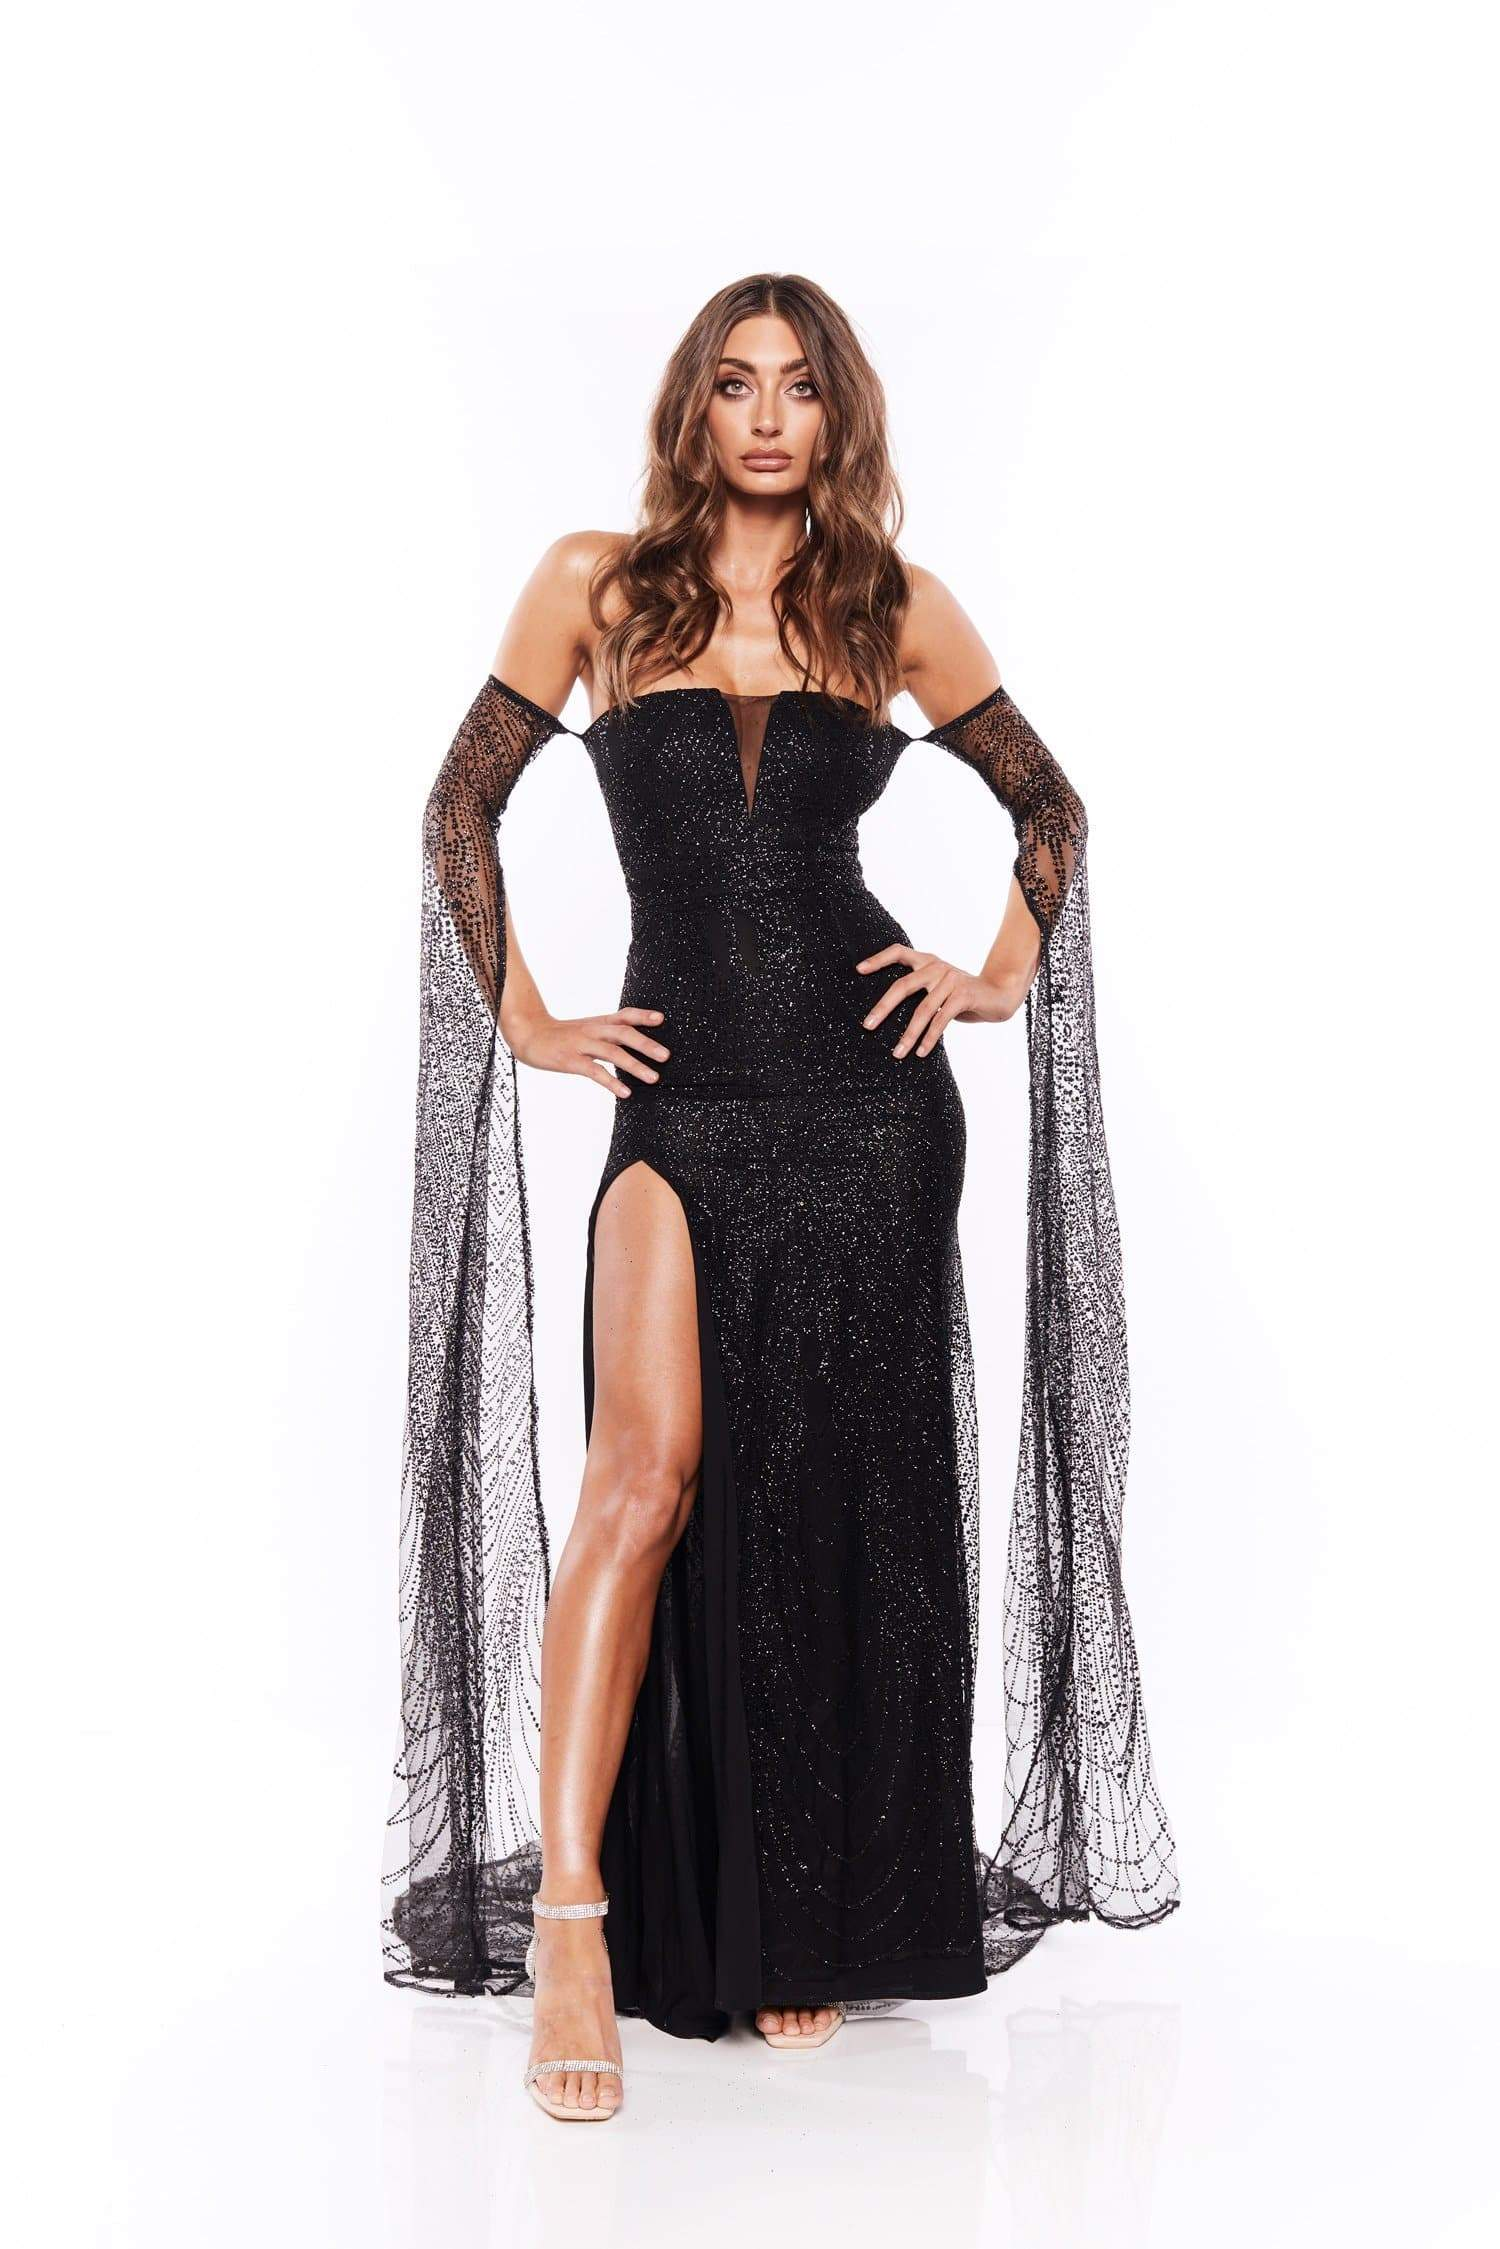 Jocelina - Black Glitter Gown | Long Off-Shoulder Sleeves & Side Slit